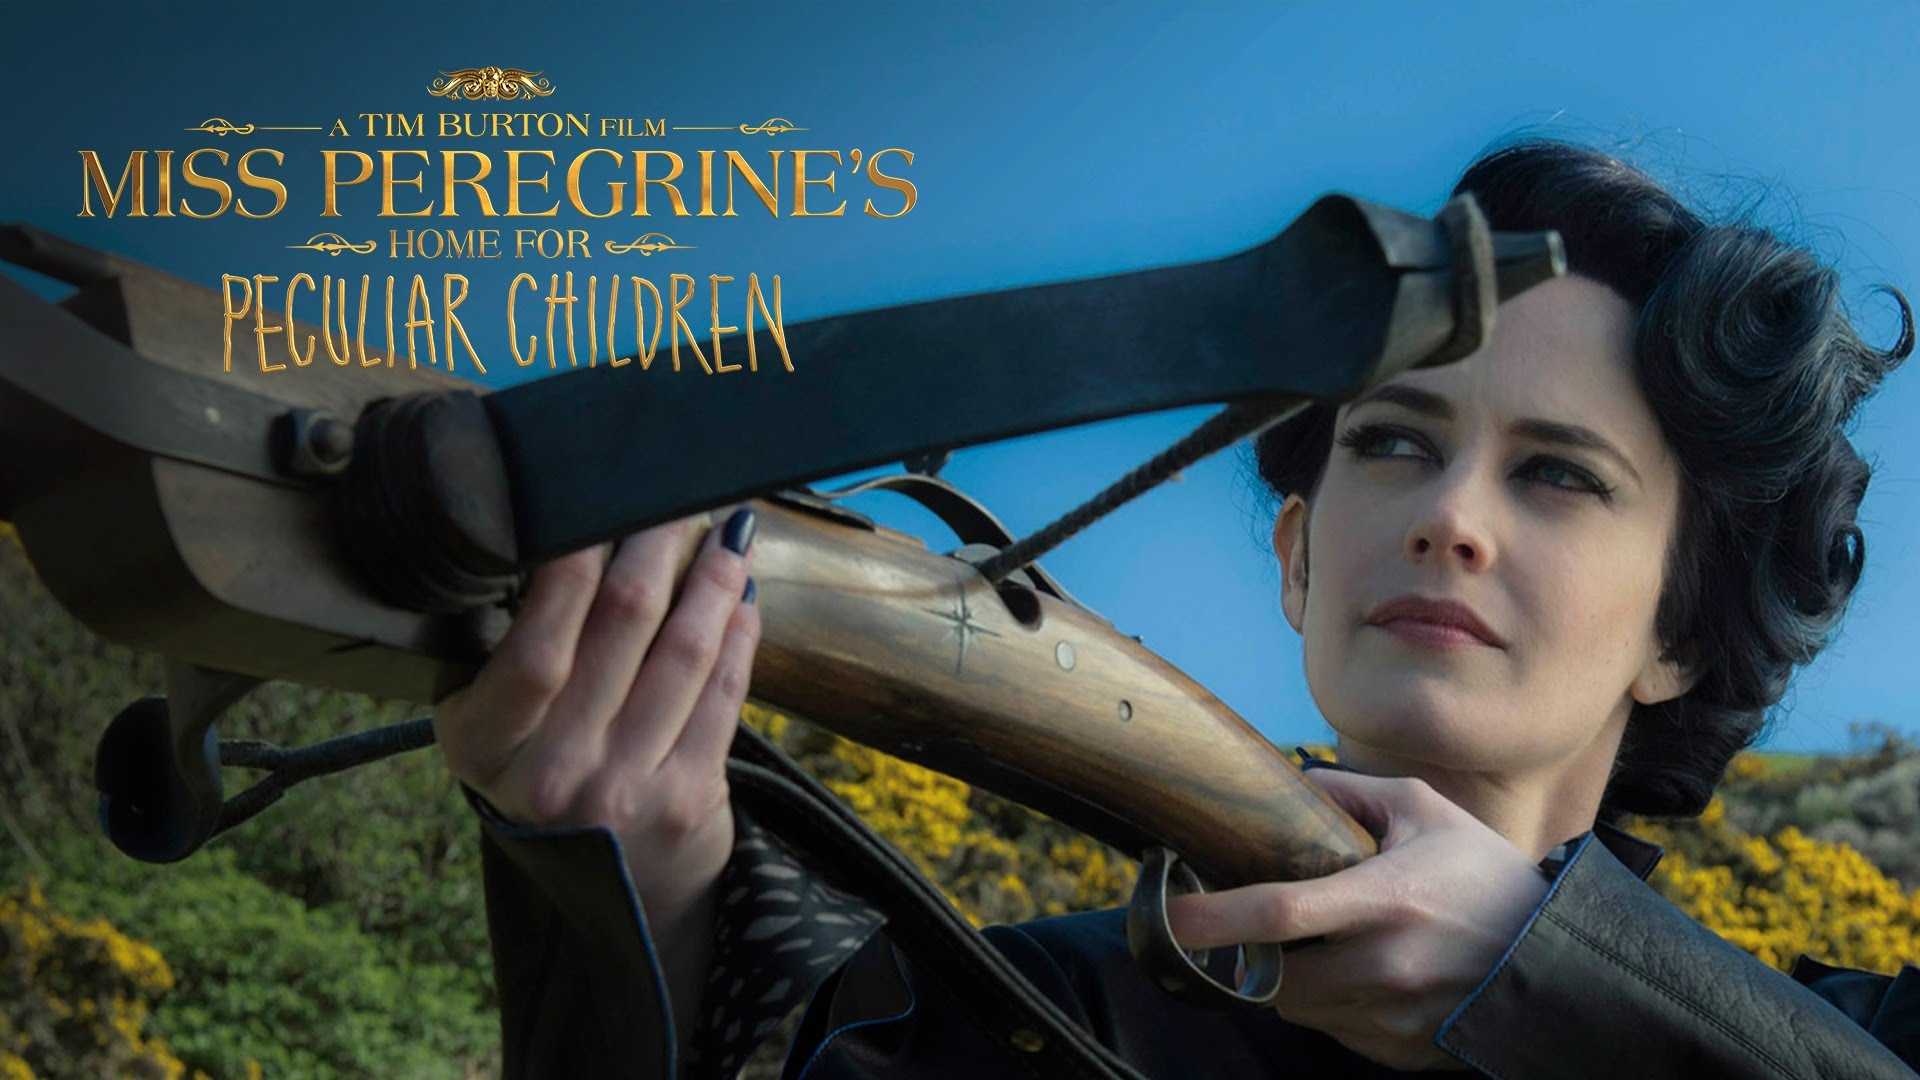 Miss Peregrines Home For Peculiar Children-15Março2016 (2)